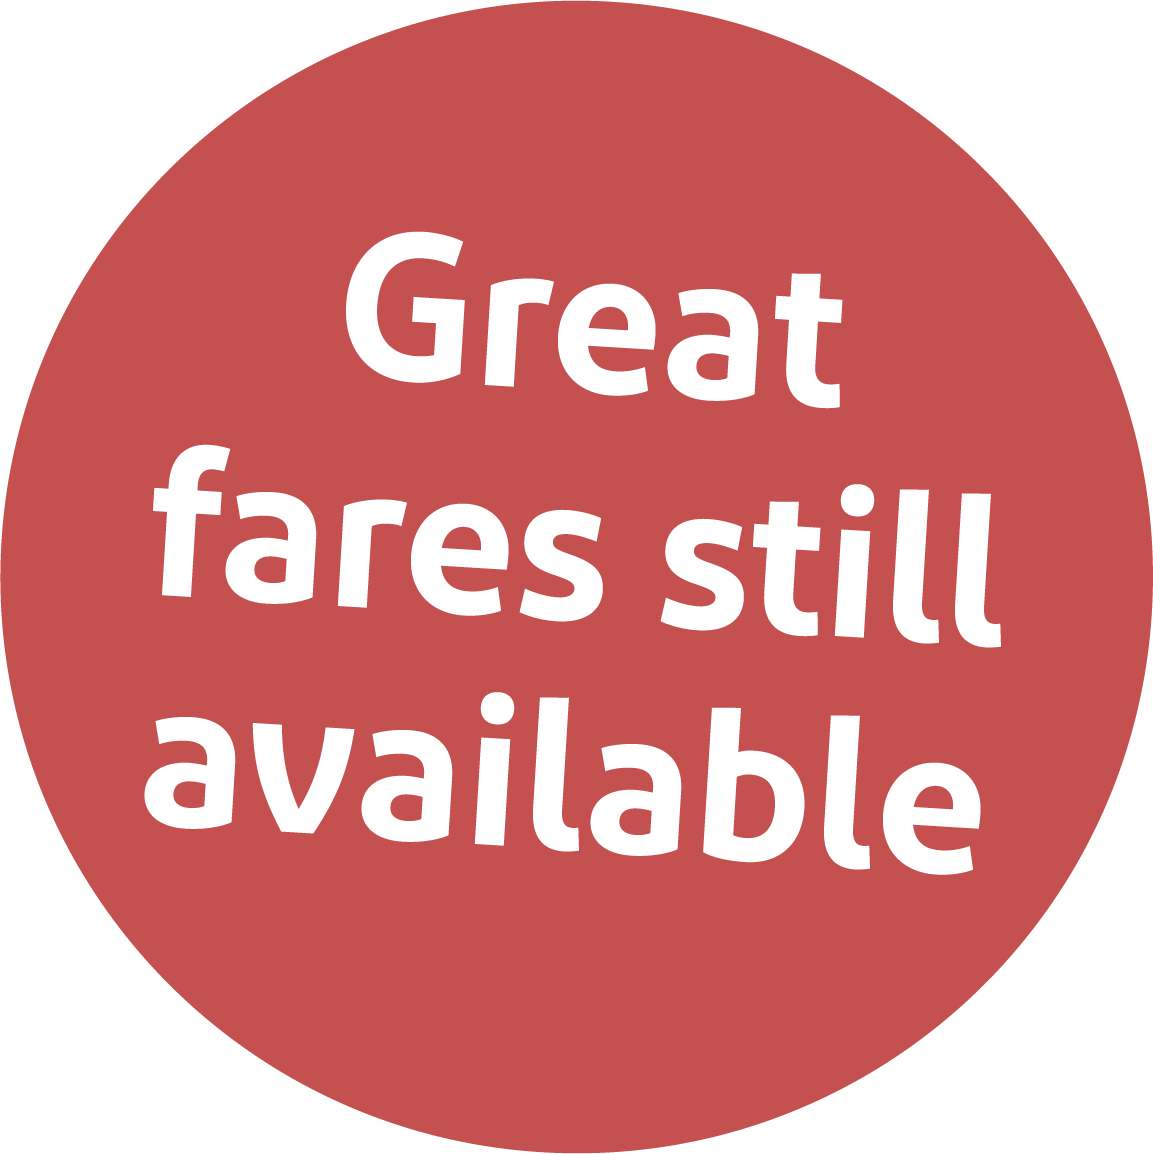 Great fares still available